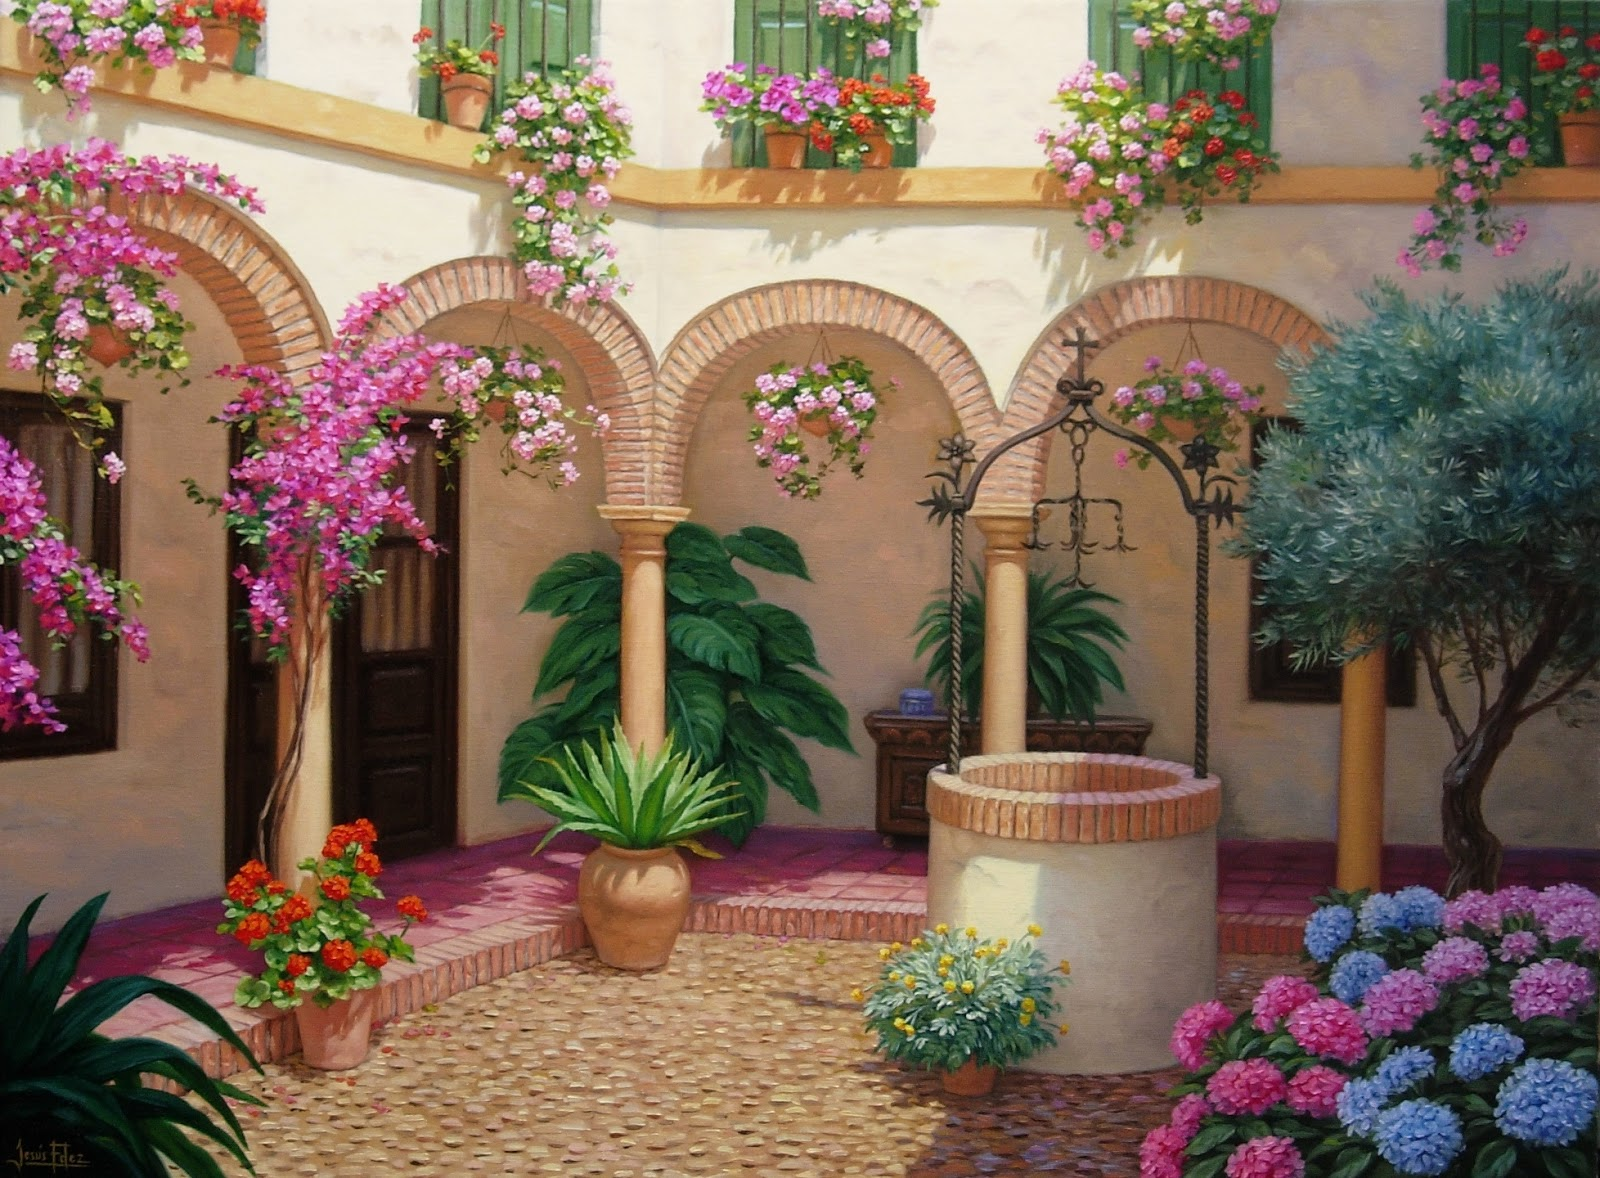 Jes s fern ndez pintor patio andaluz con pozo y olivo for Patios andaluces decoracion